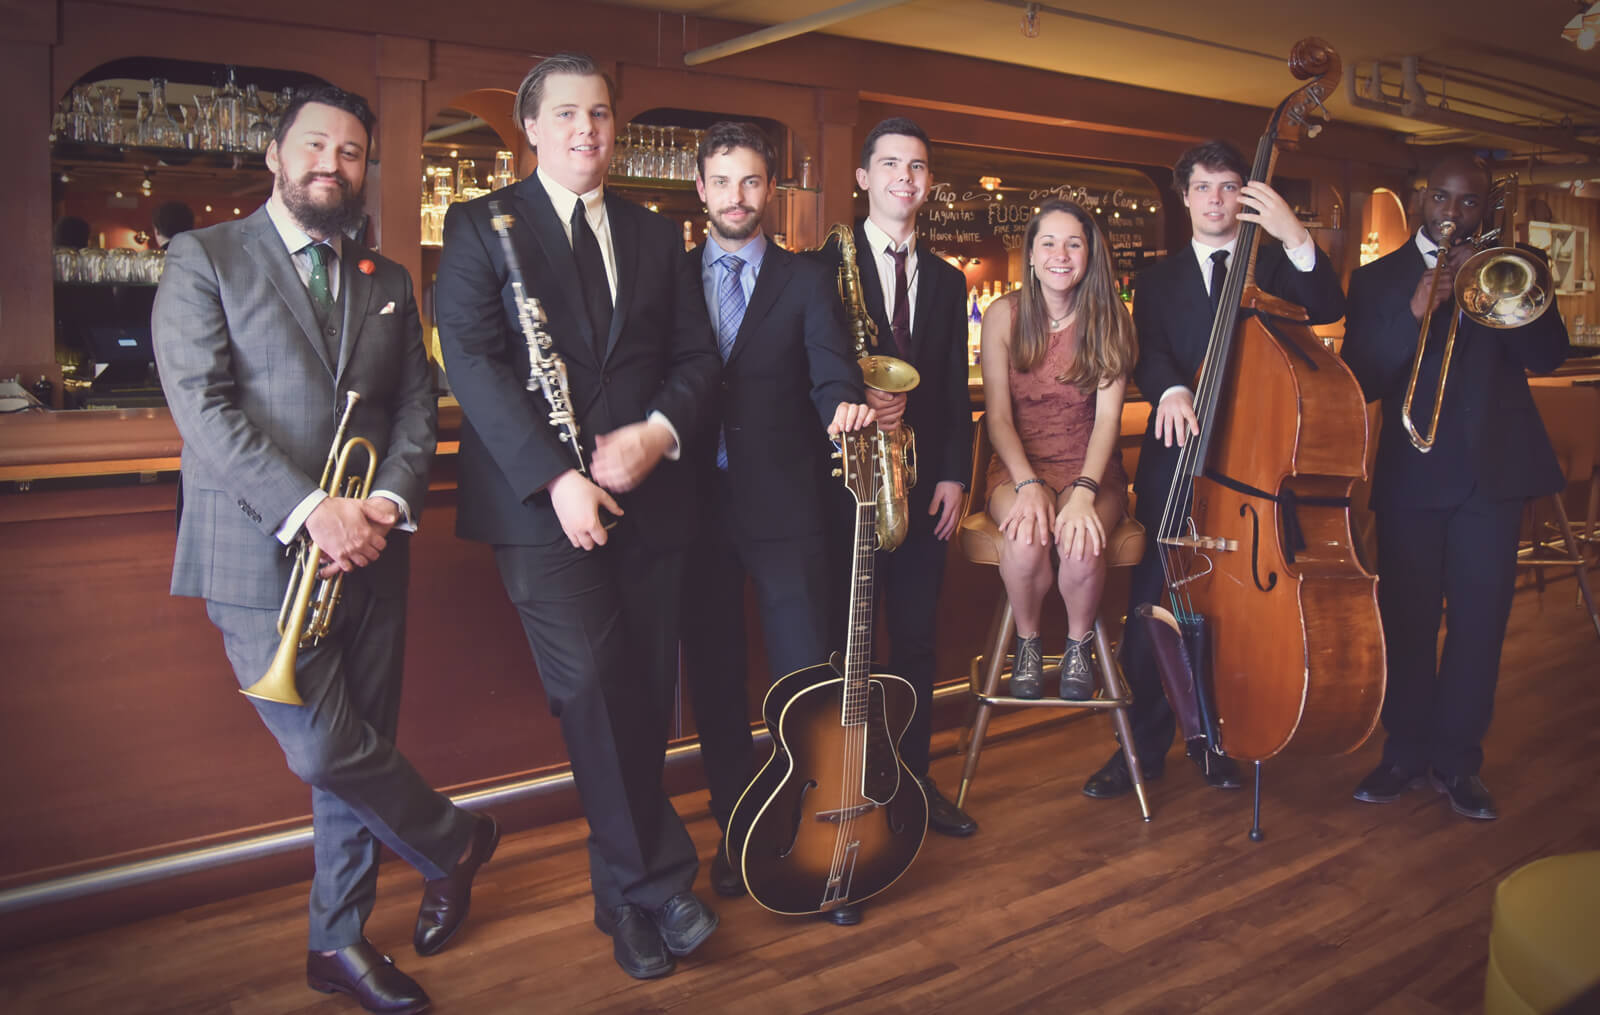 Beantown Swing Orchestra Small Group at Capo Supper Club (photo by R. Trumbour)